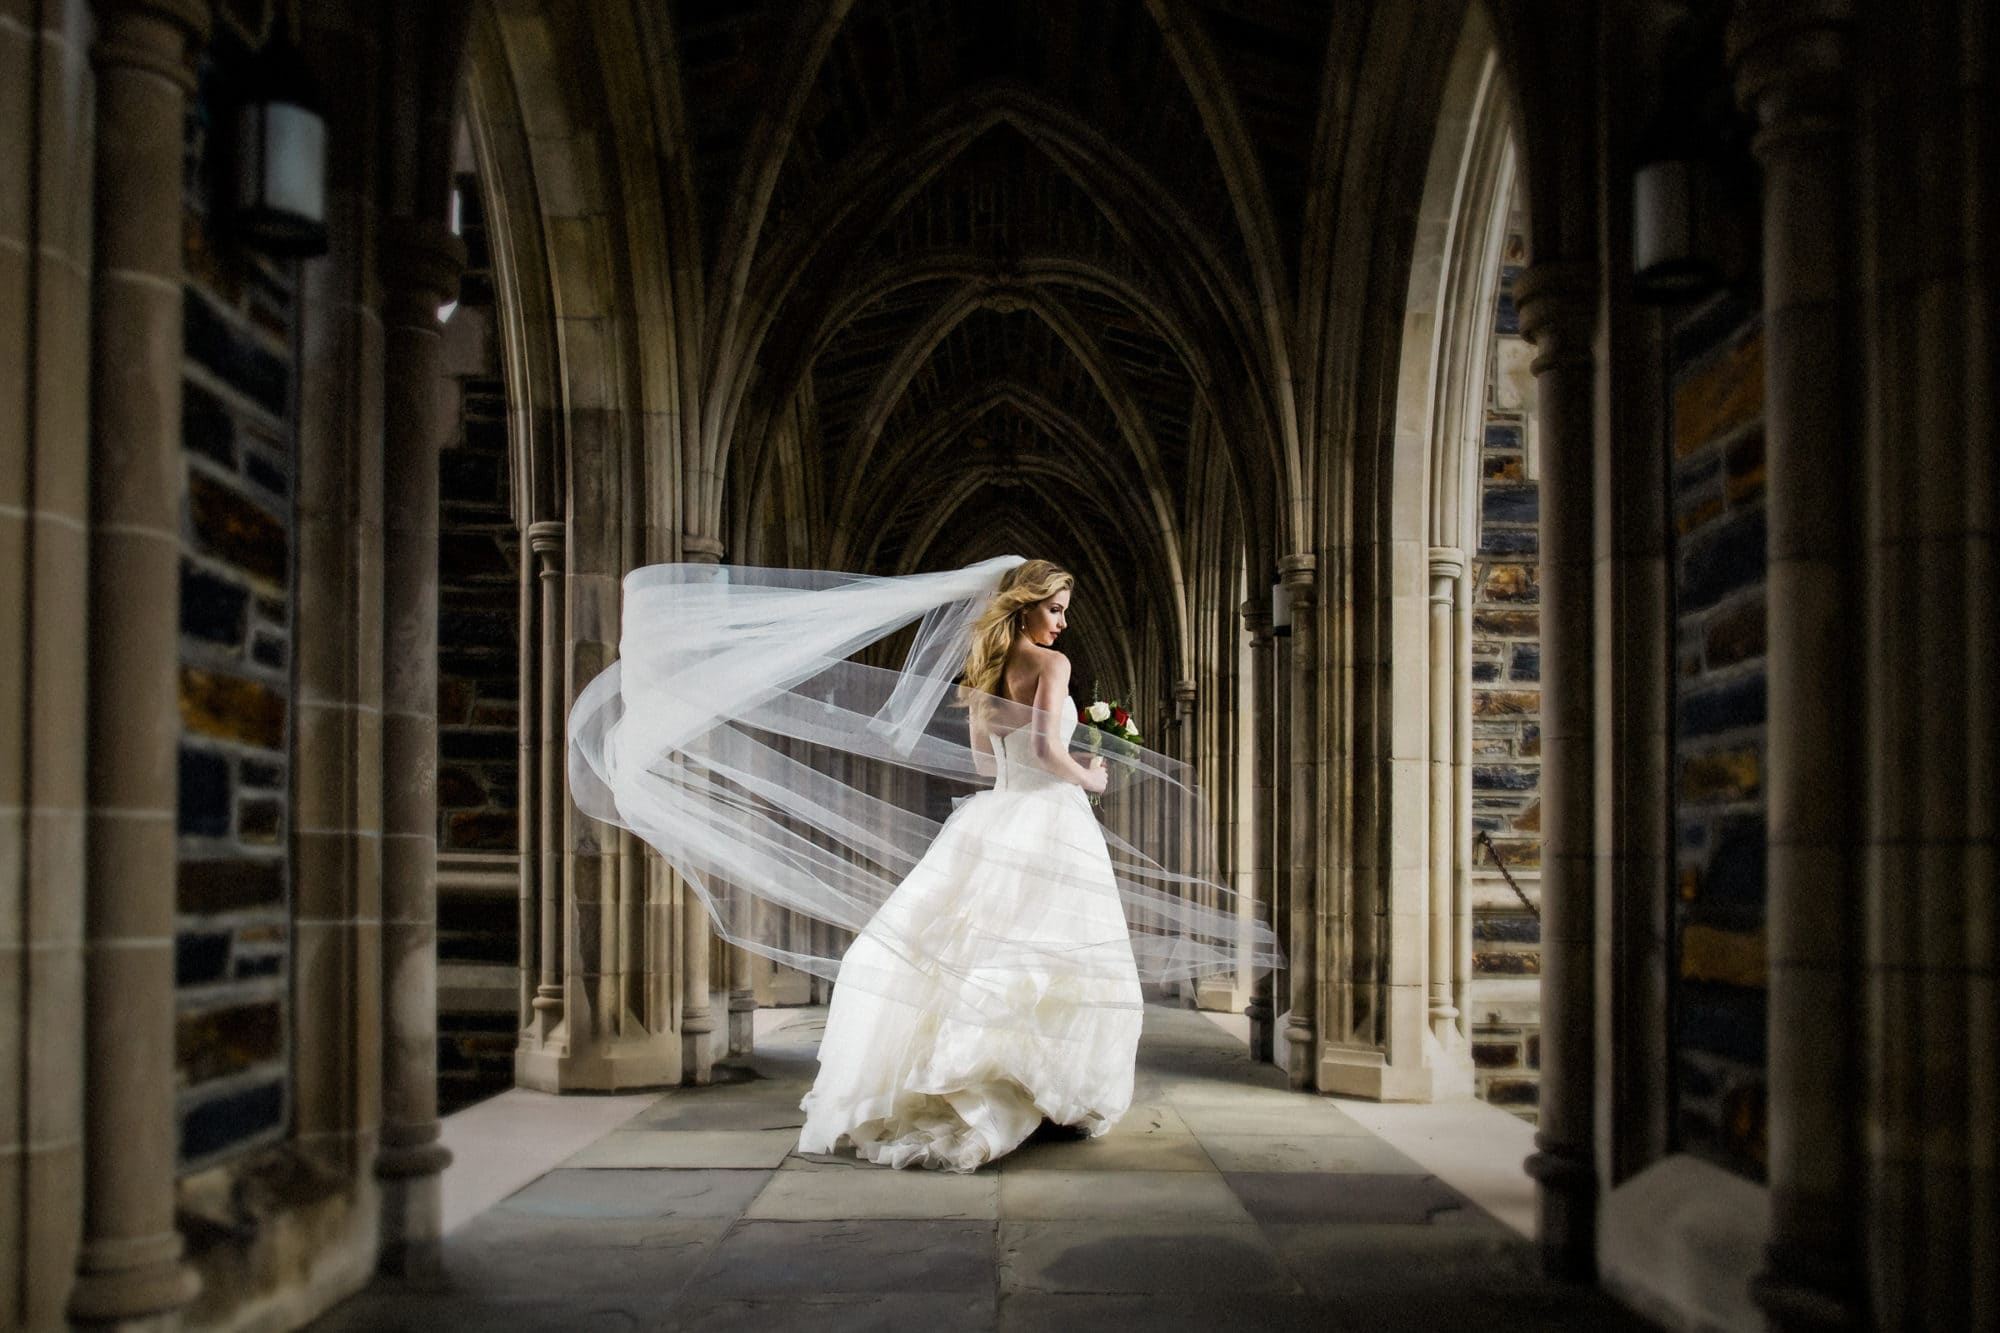 Duke-Chapel-Bride-in-Arcades-2019-1-2